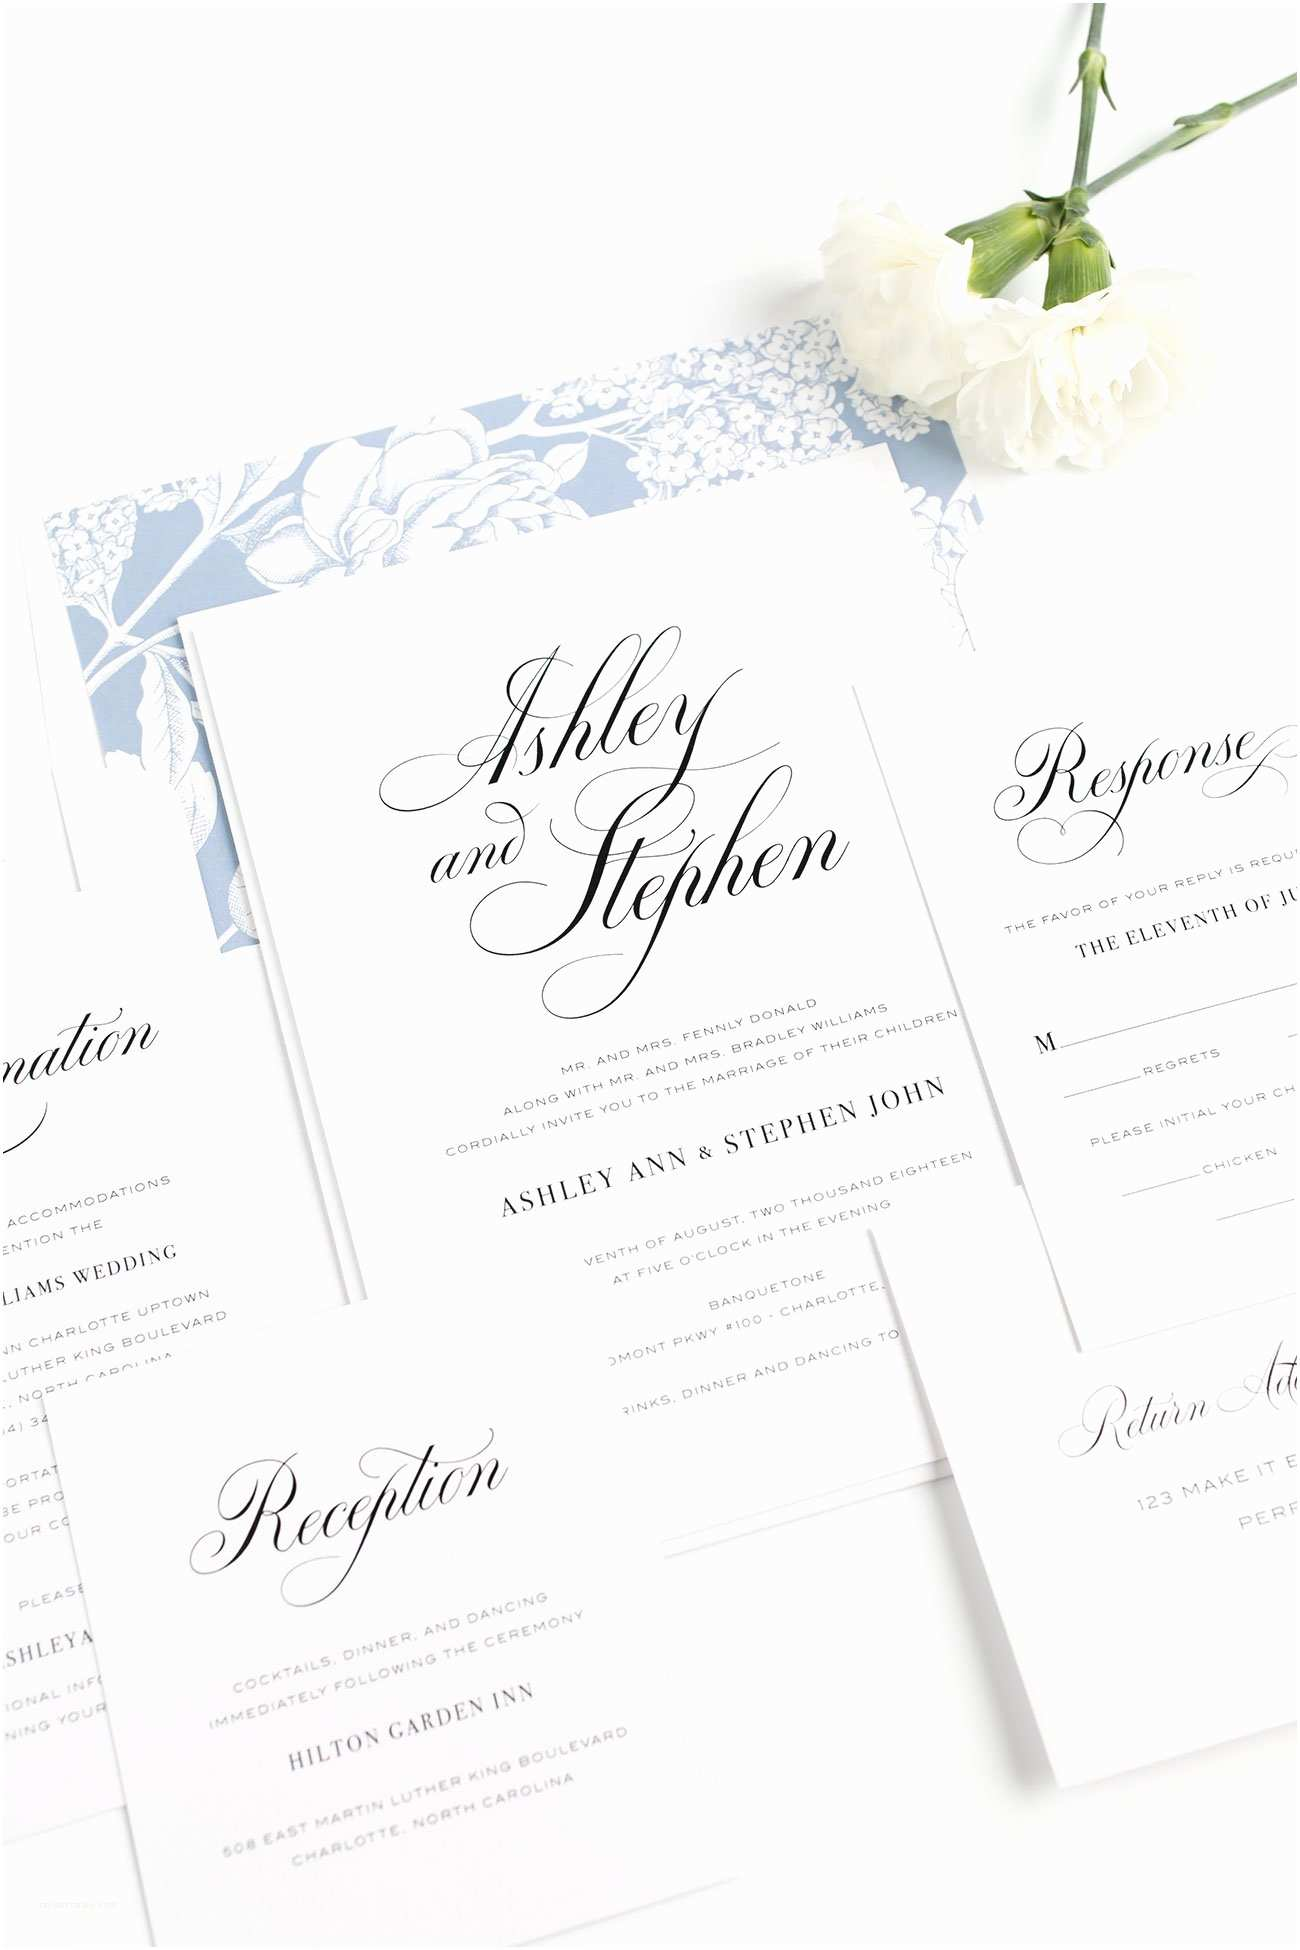 Wedding Invitation Calligraphy Calligraphy Wedding Invitations In Serenity Blue – Wedding